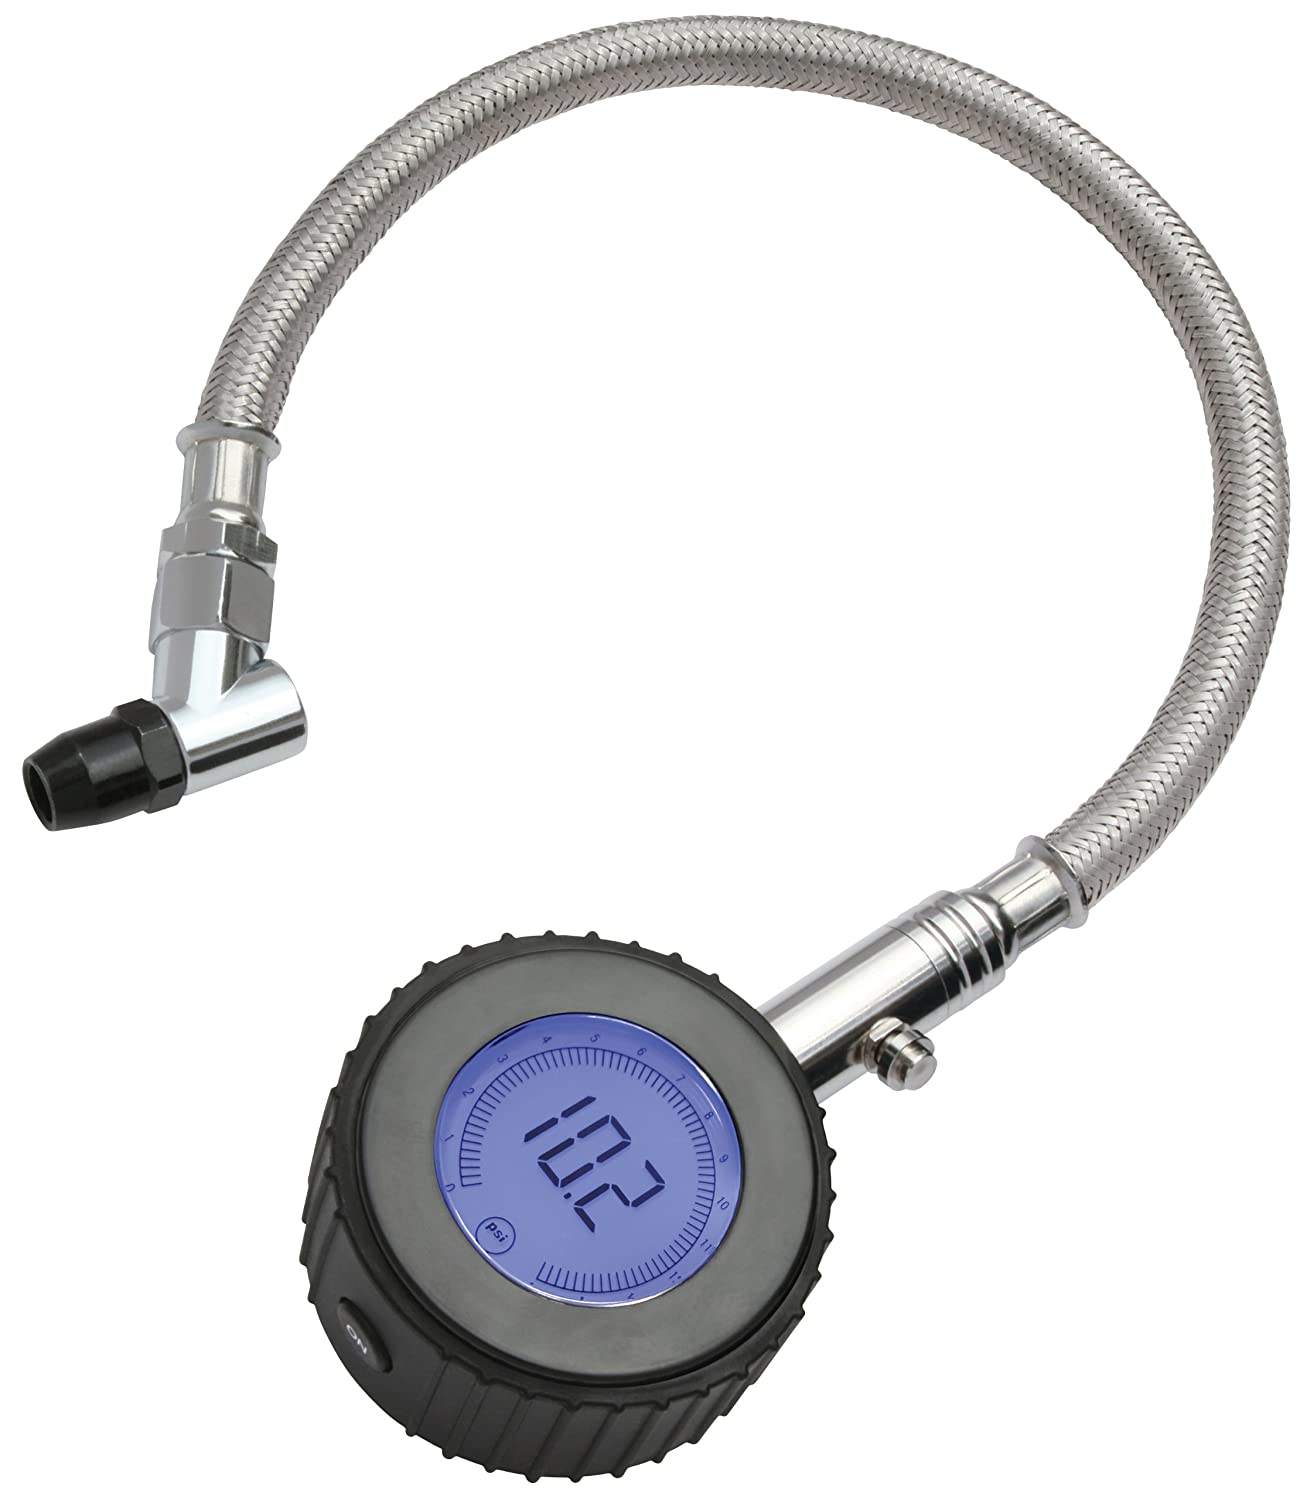 Measurement Limited Accutire MS-5511GB Pro Racing Tire Gauge